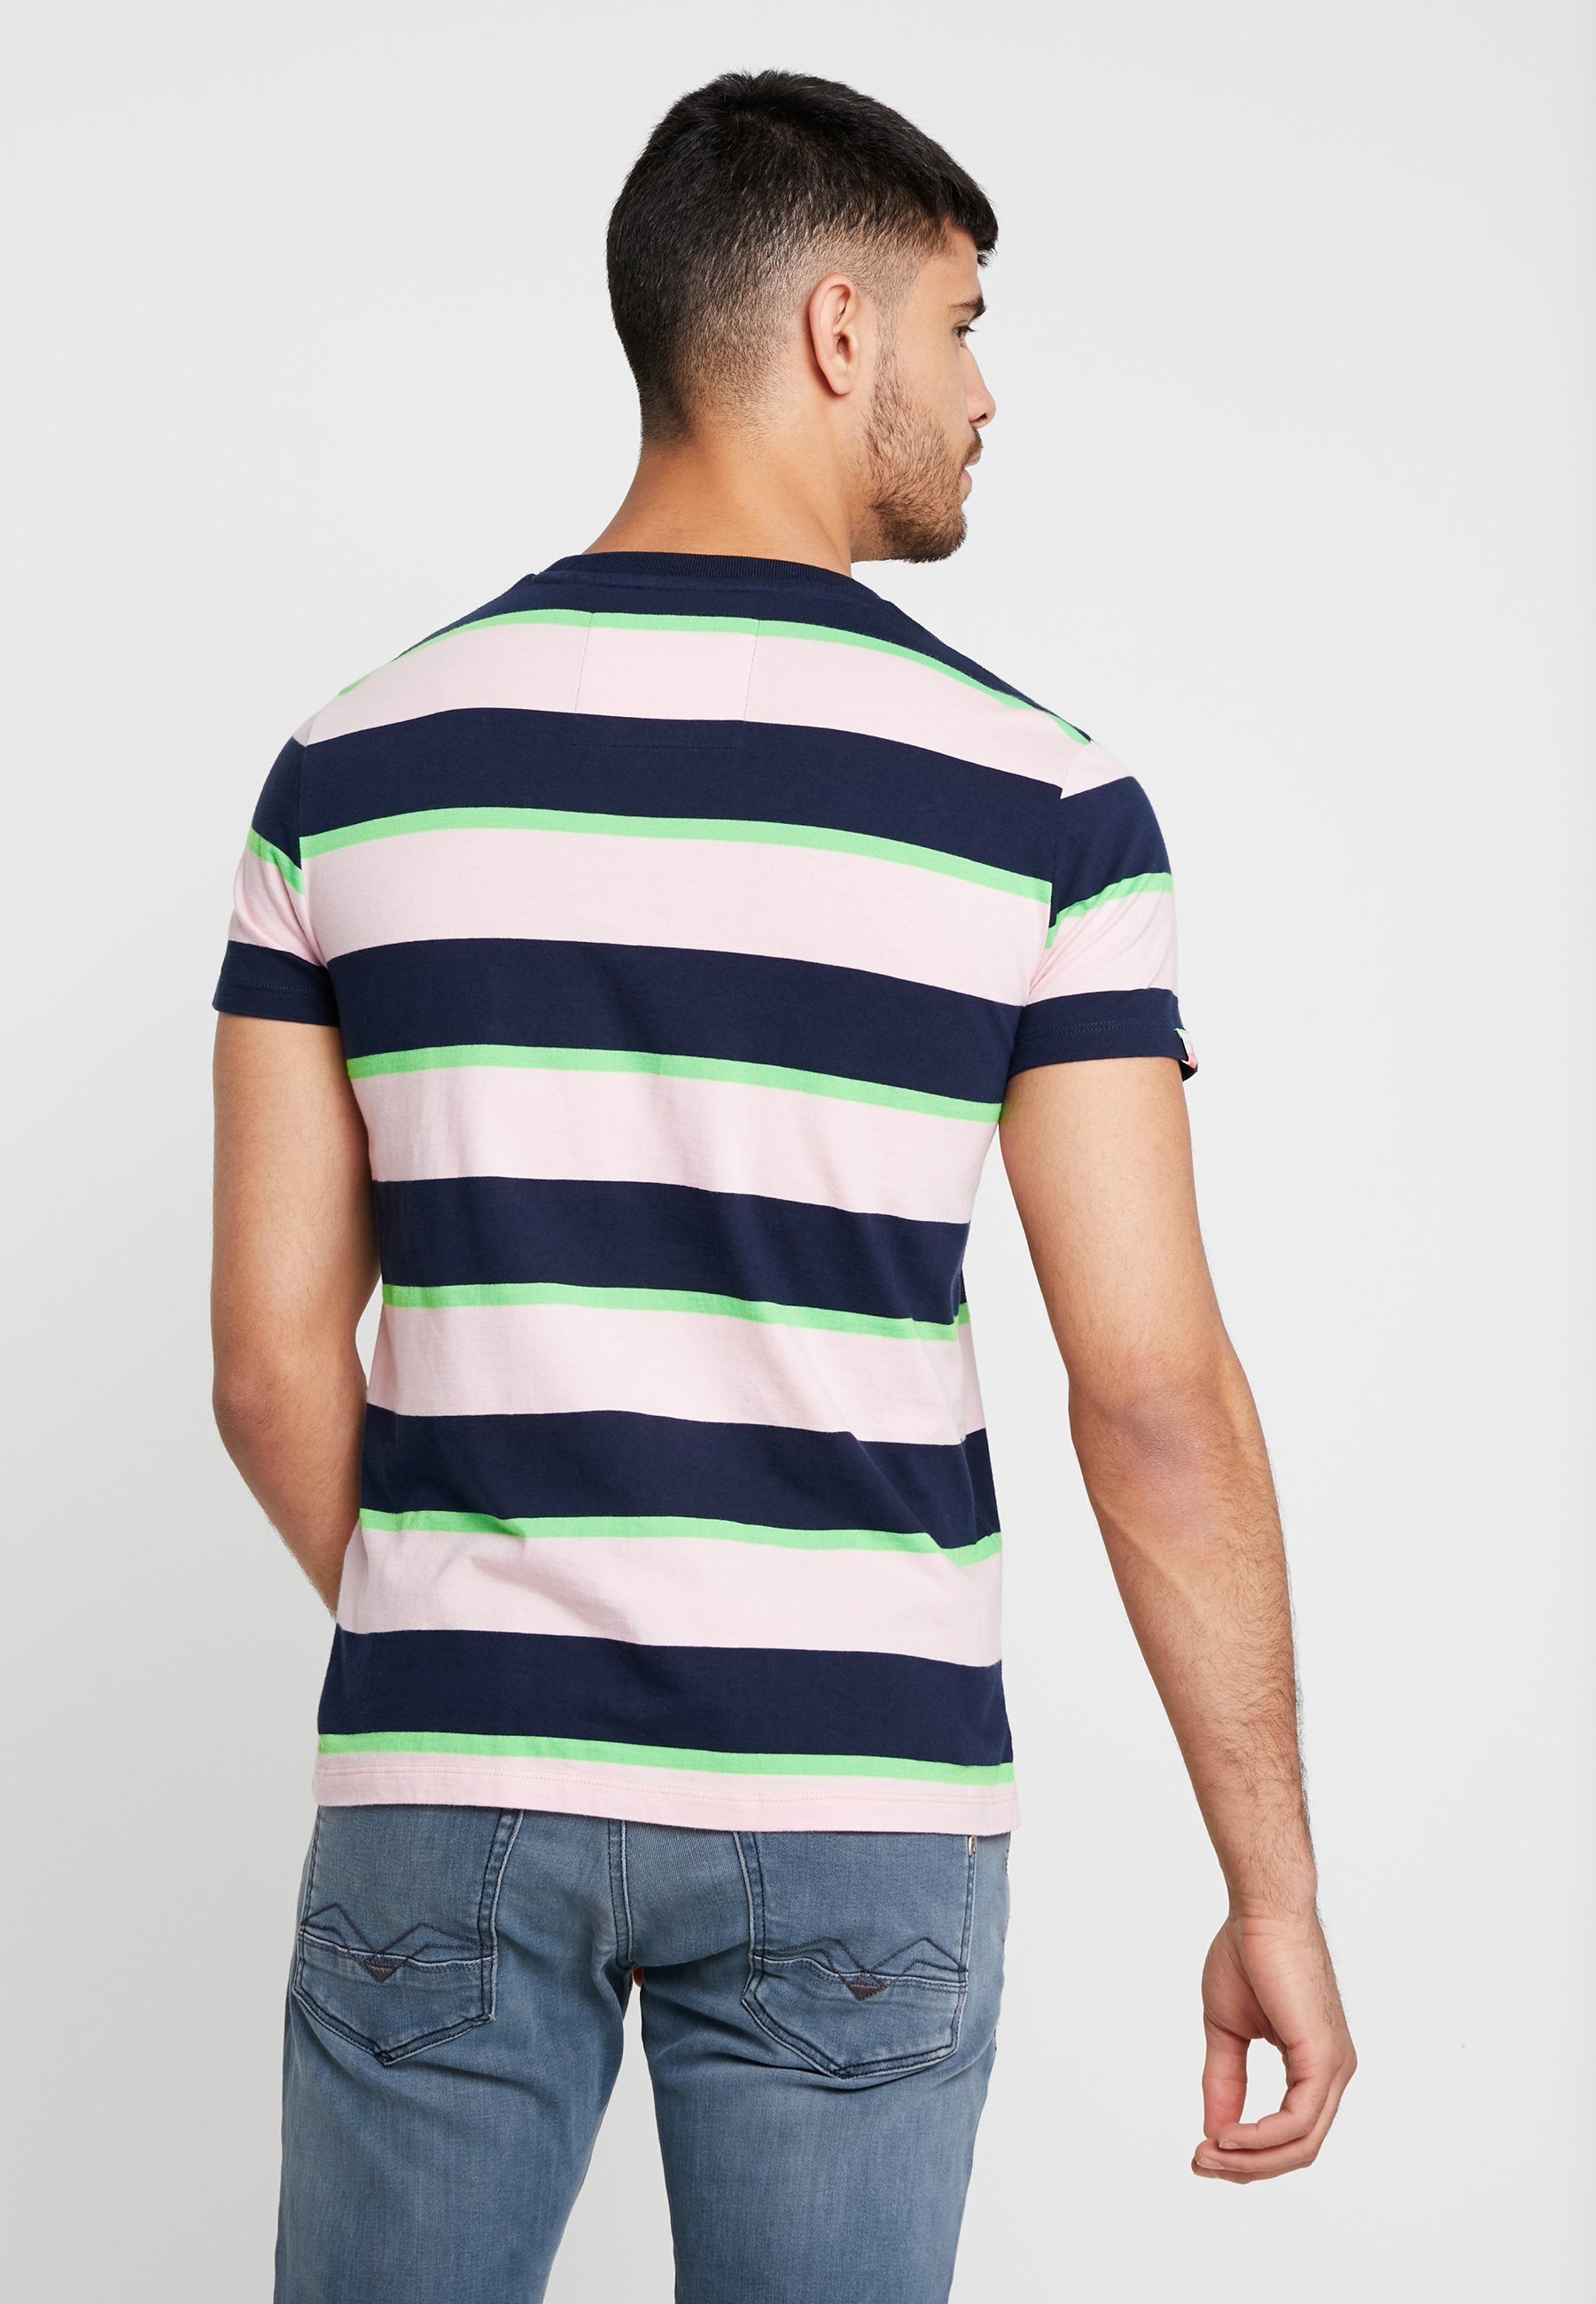 Stampa Prime Con Superdry Skate shirt Stacked Pink LuxT dBCxeo